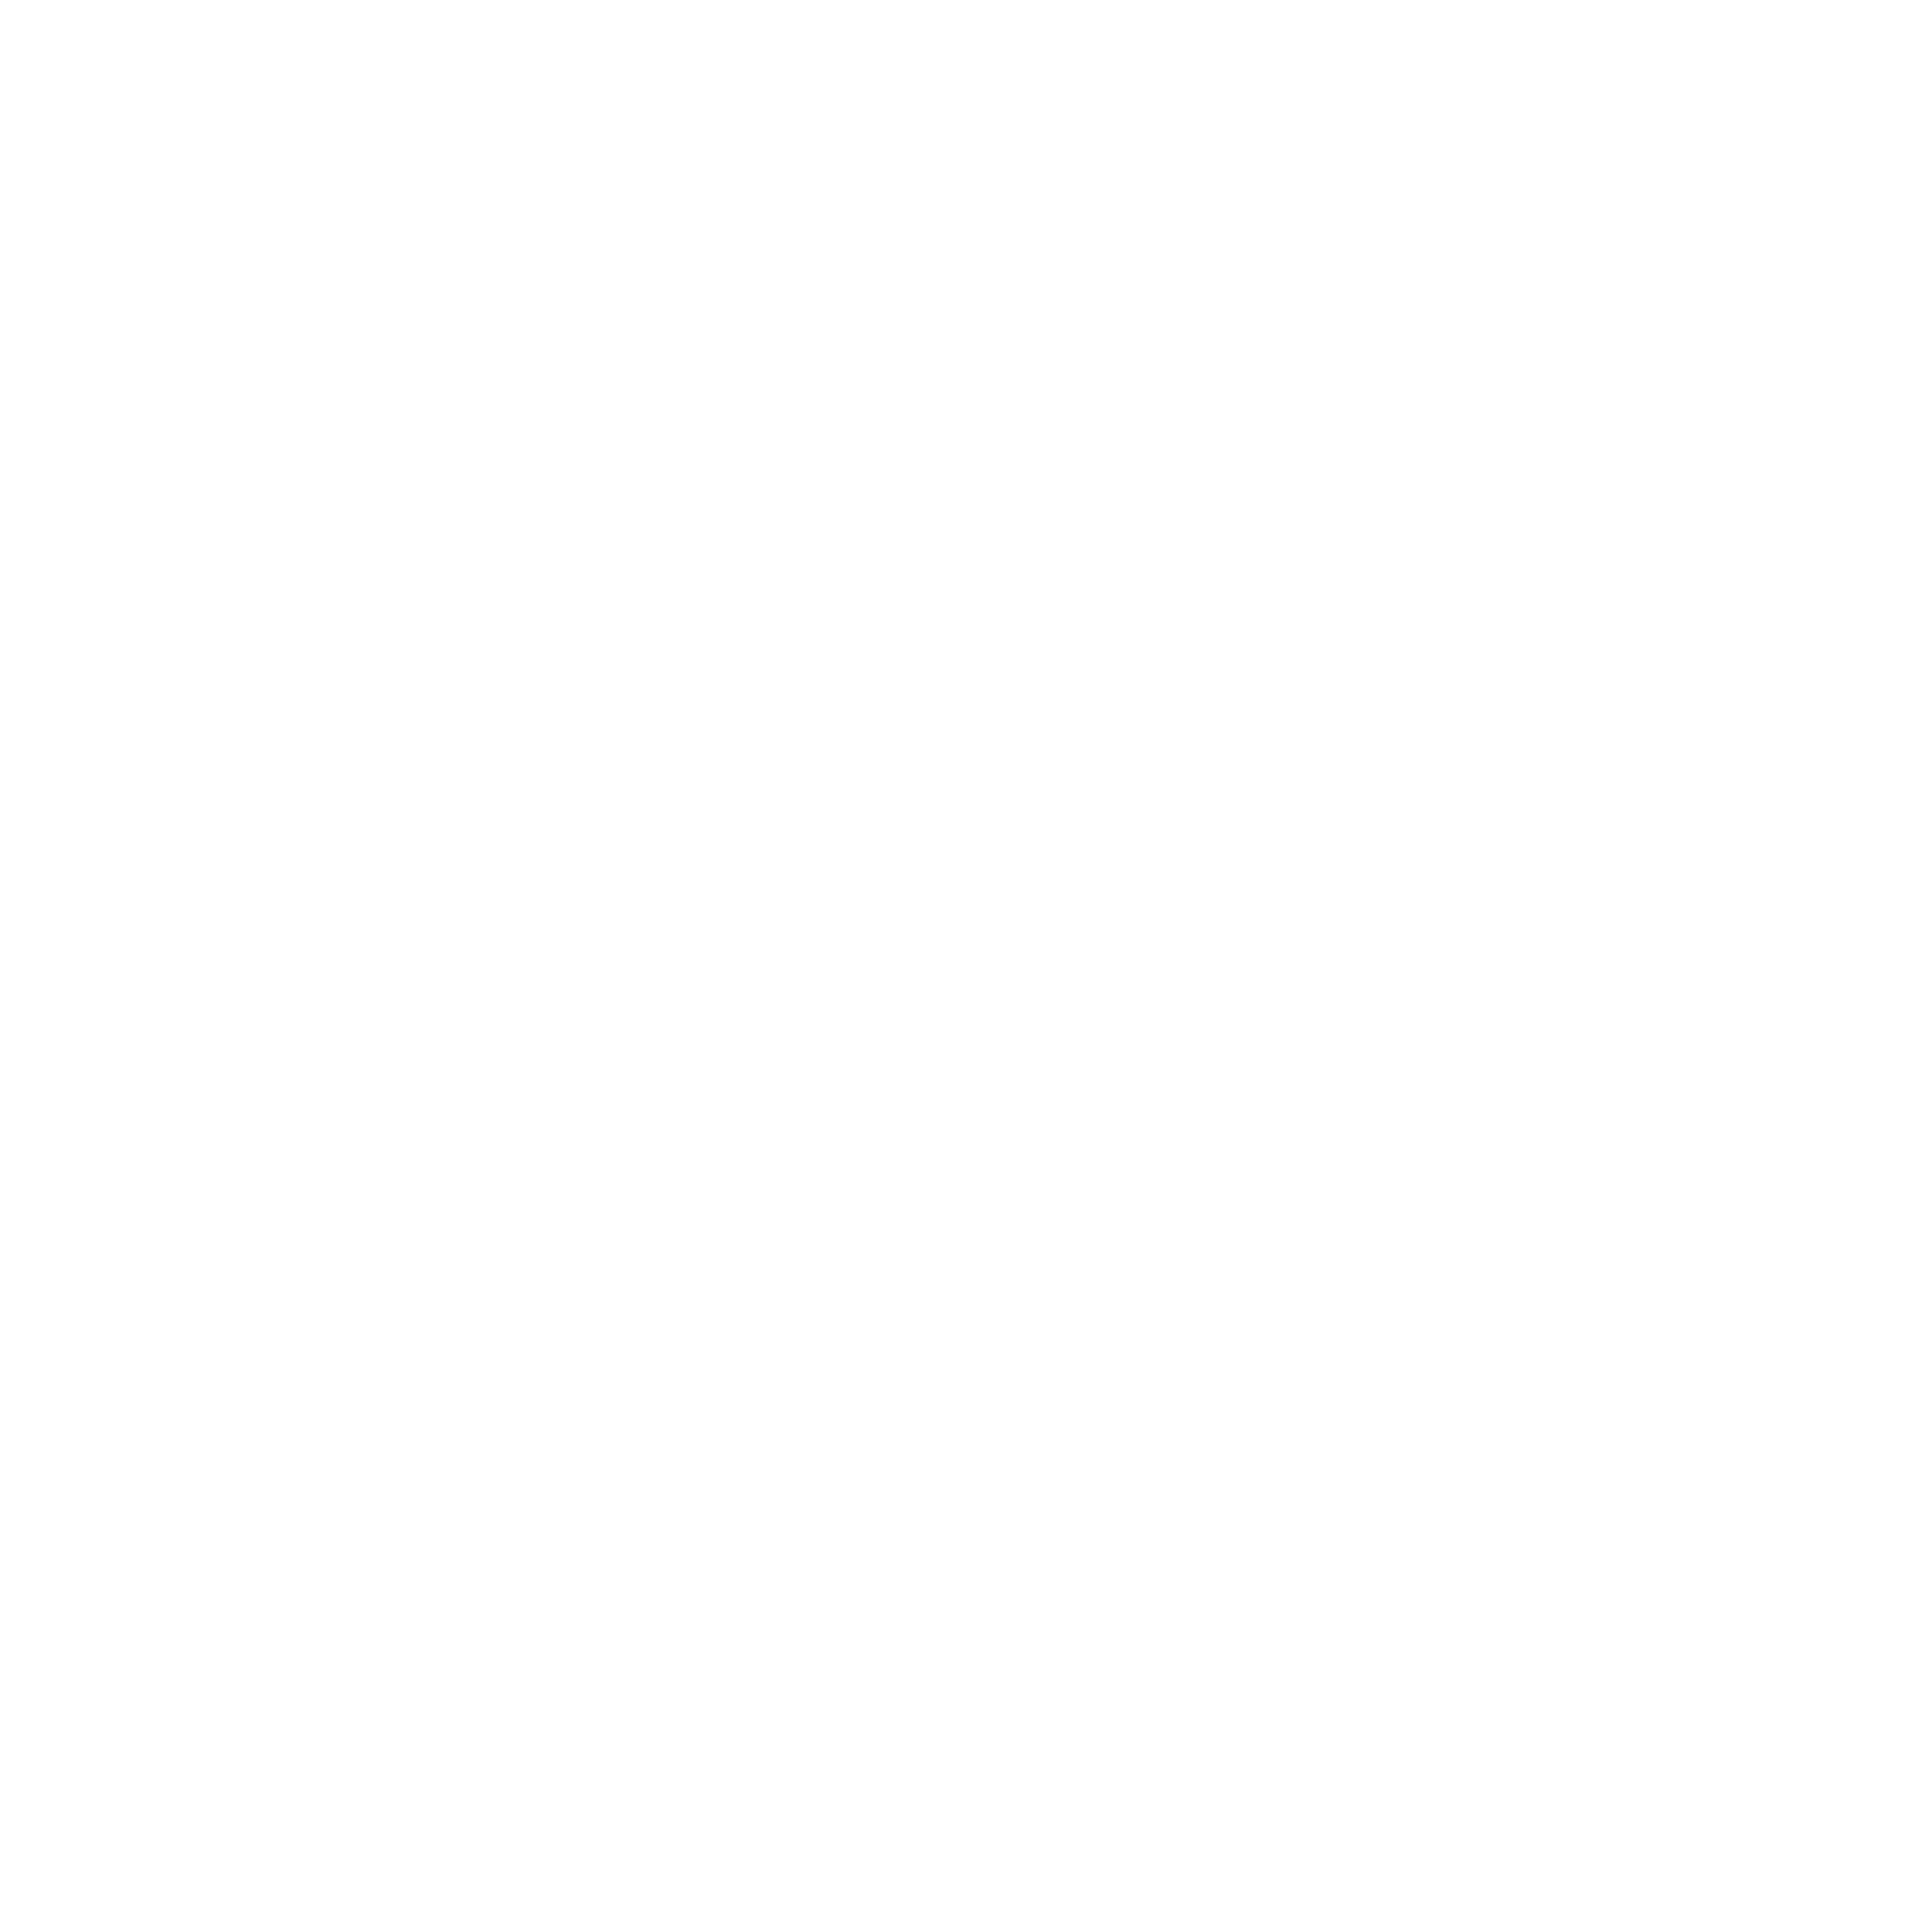 SECC LOGO with a white outline of the State of Delaware